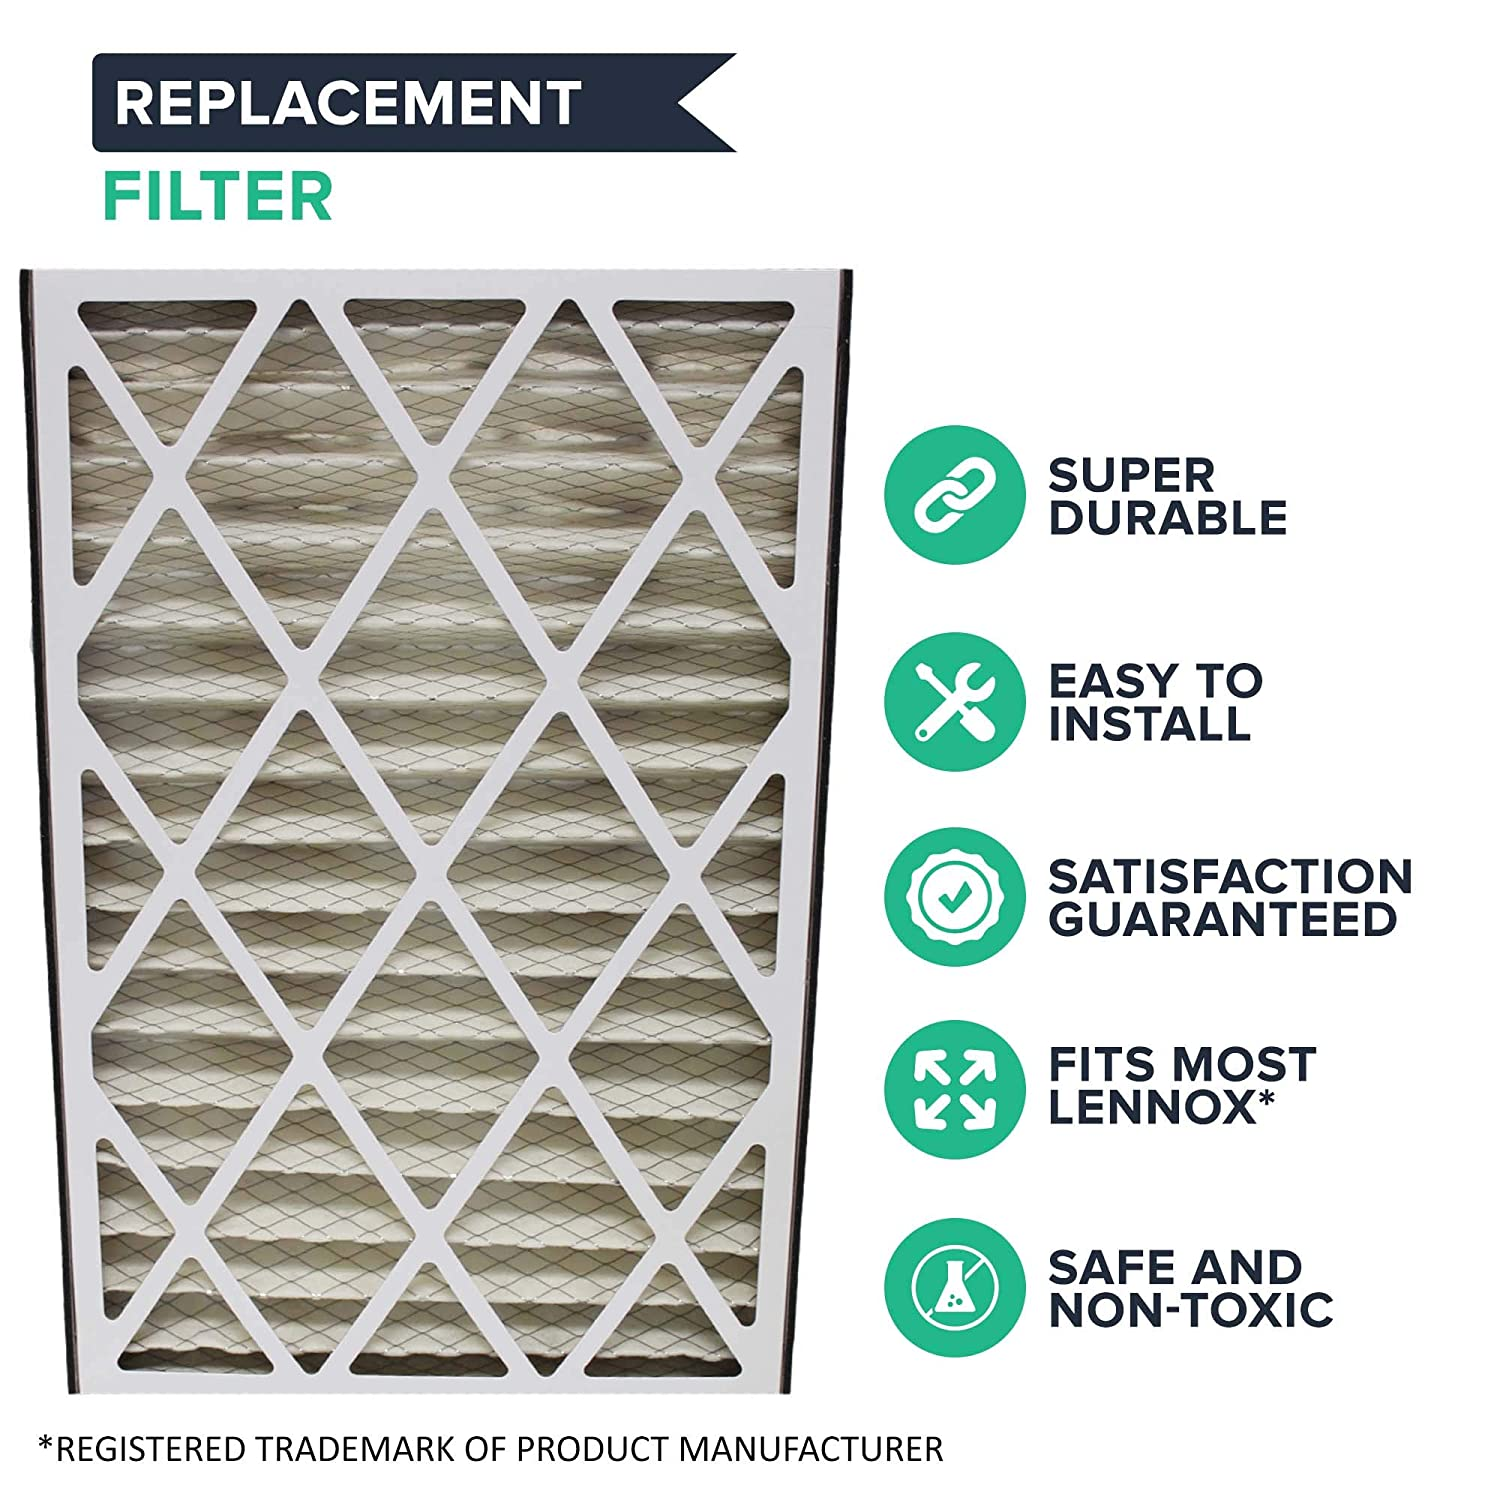 Think Crucial 2 Replacements for Lennox 16x25x3 MERV 8 Furnace Air Filter Fits X0581 /& Healthy Climate BMAC-12C Air Cleaner